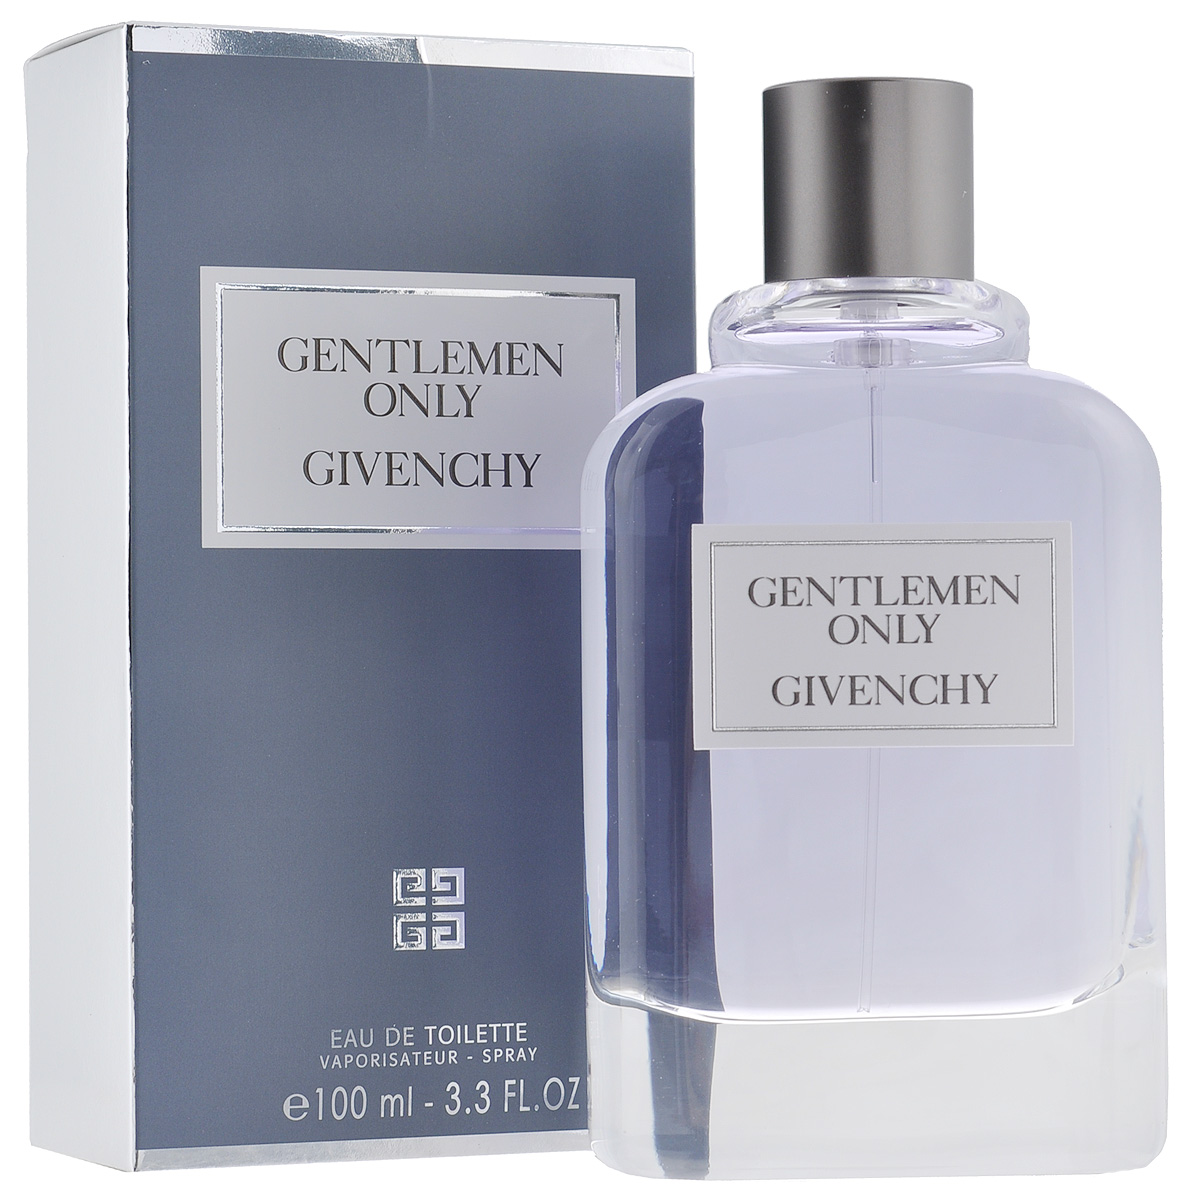 Givenchy Gentlemen Only Men Туалетная вода, 100 мл givenchy gentlemen only casual chic туалетная вода спрей 50 мл